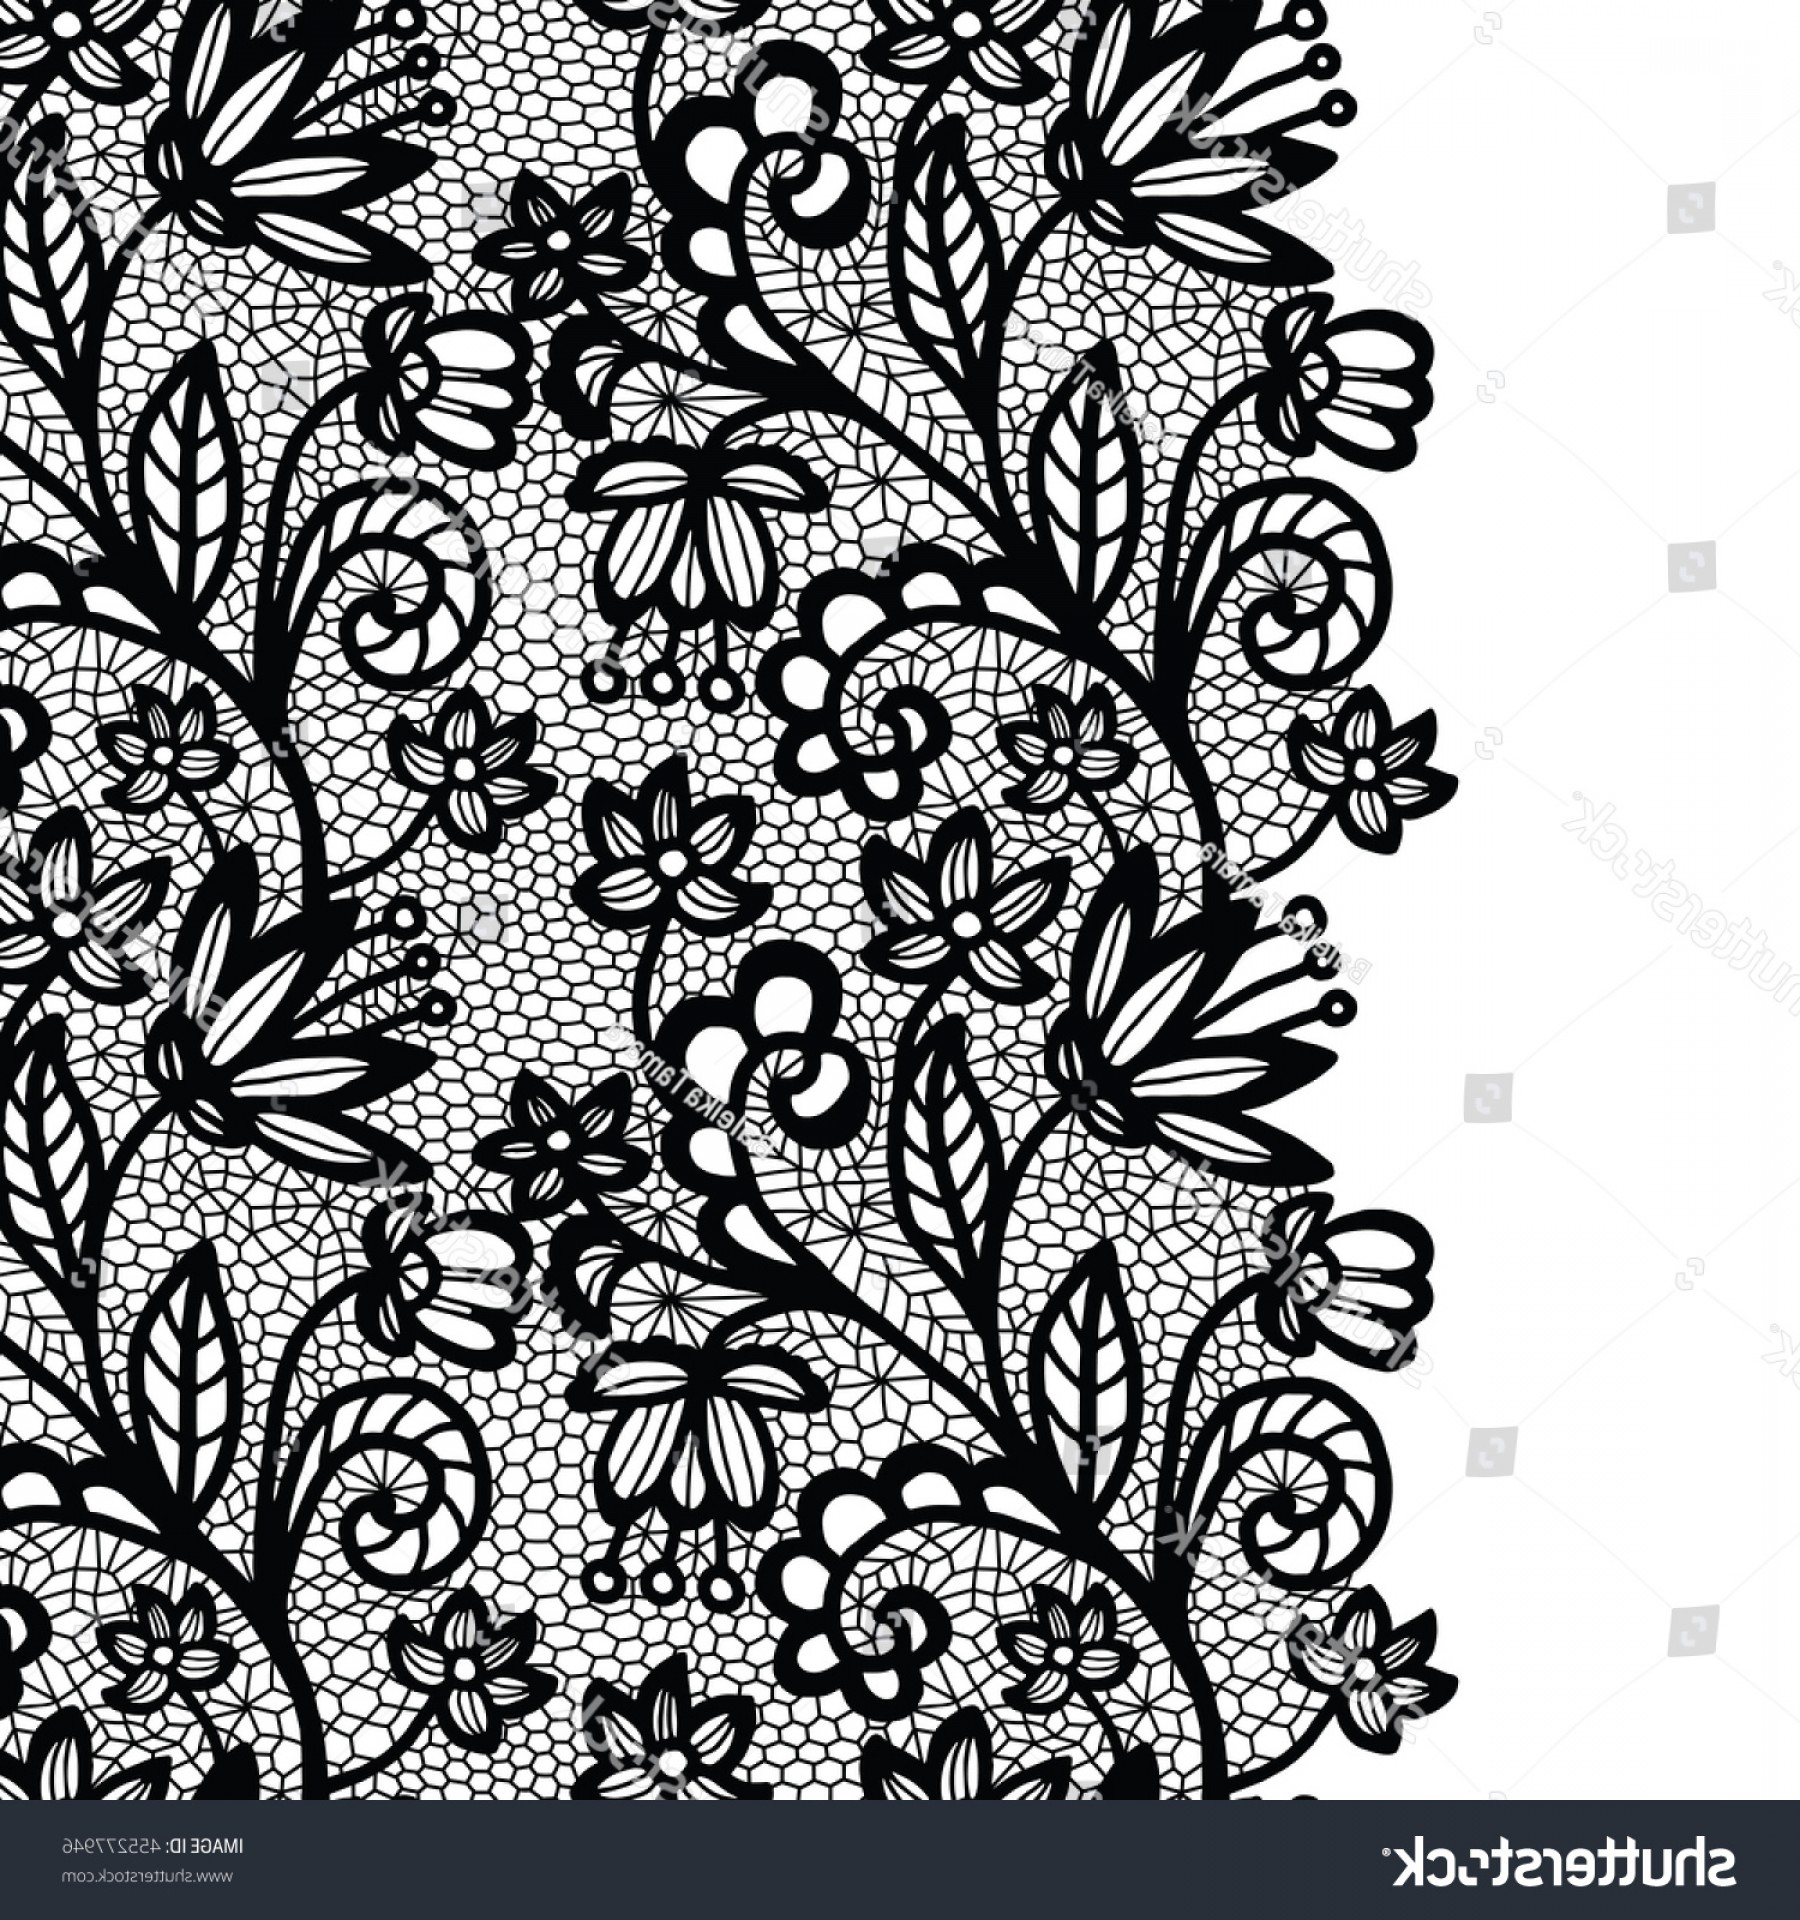 Floral Lace Trim Vector: Lace Border Vector Illustration Black Lacy